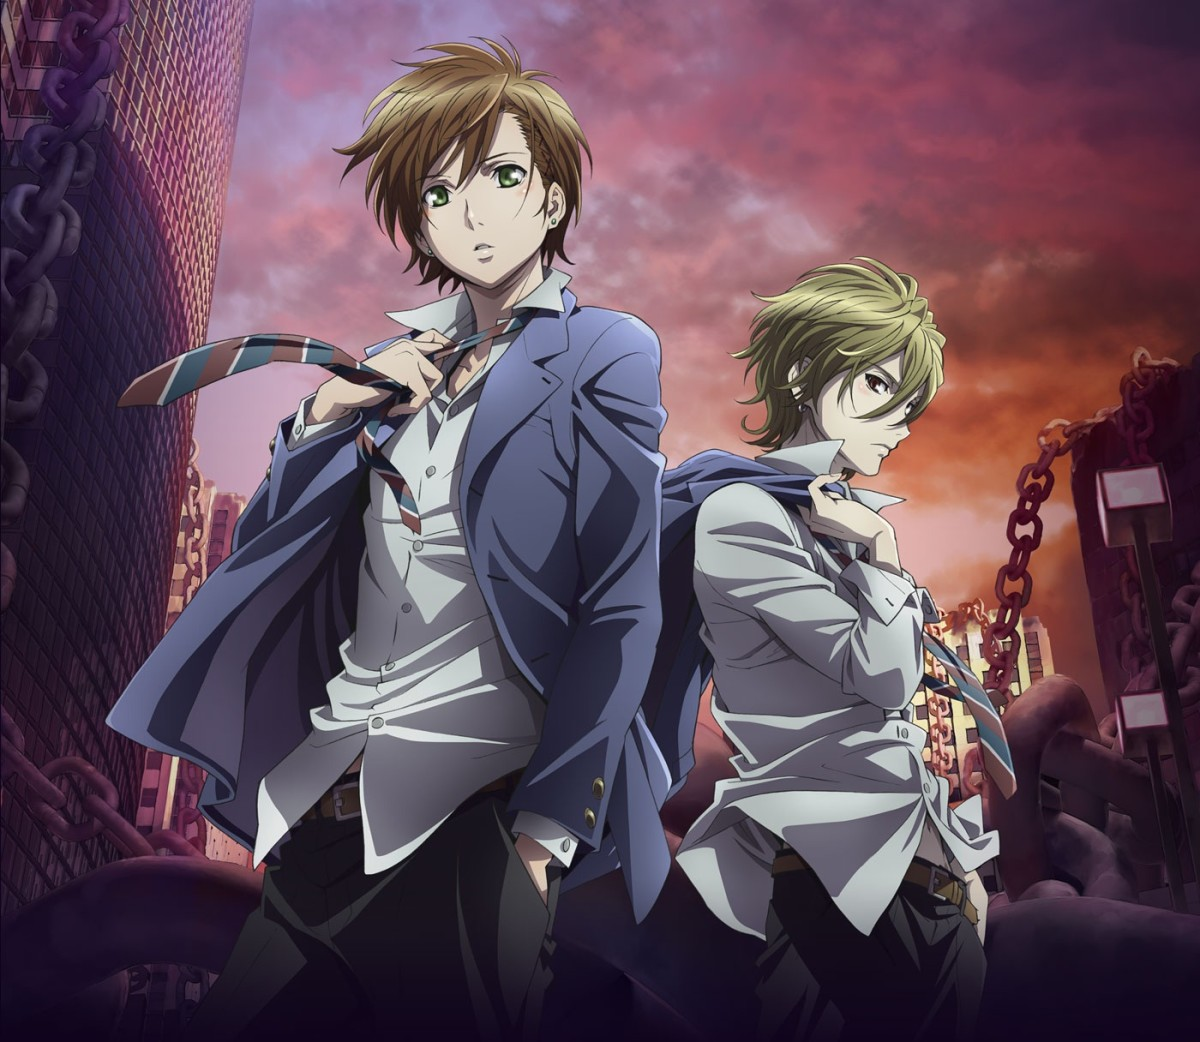 Protagonists Yoshino and Mahiro must save the world and find the murderer of Mahiro's younger sister.